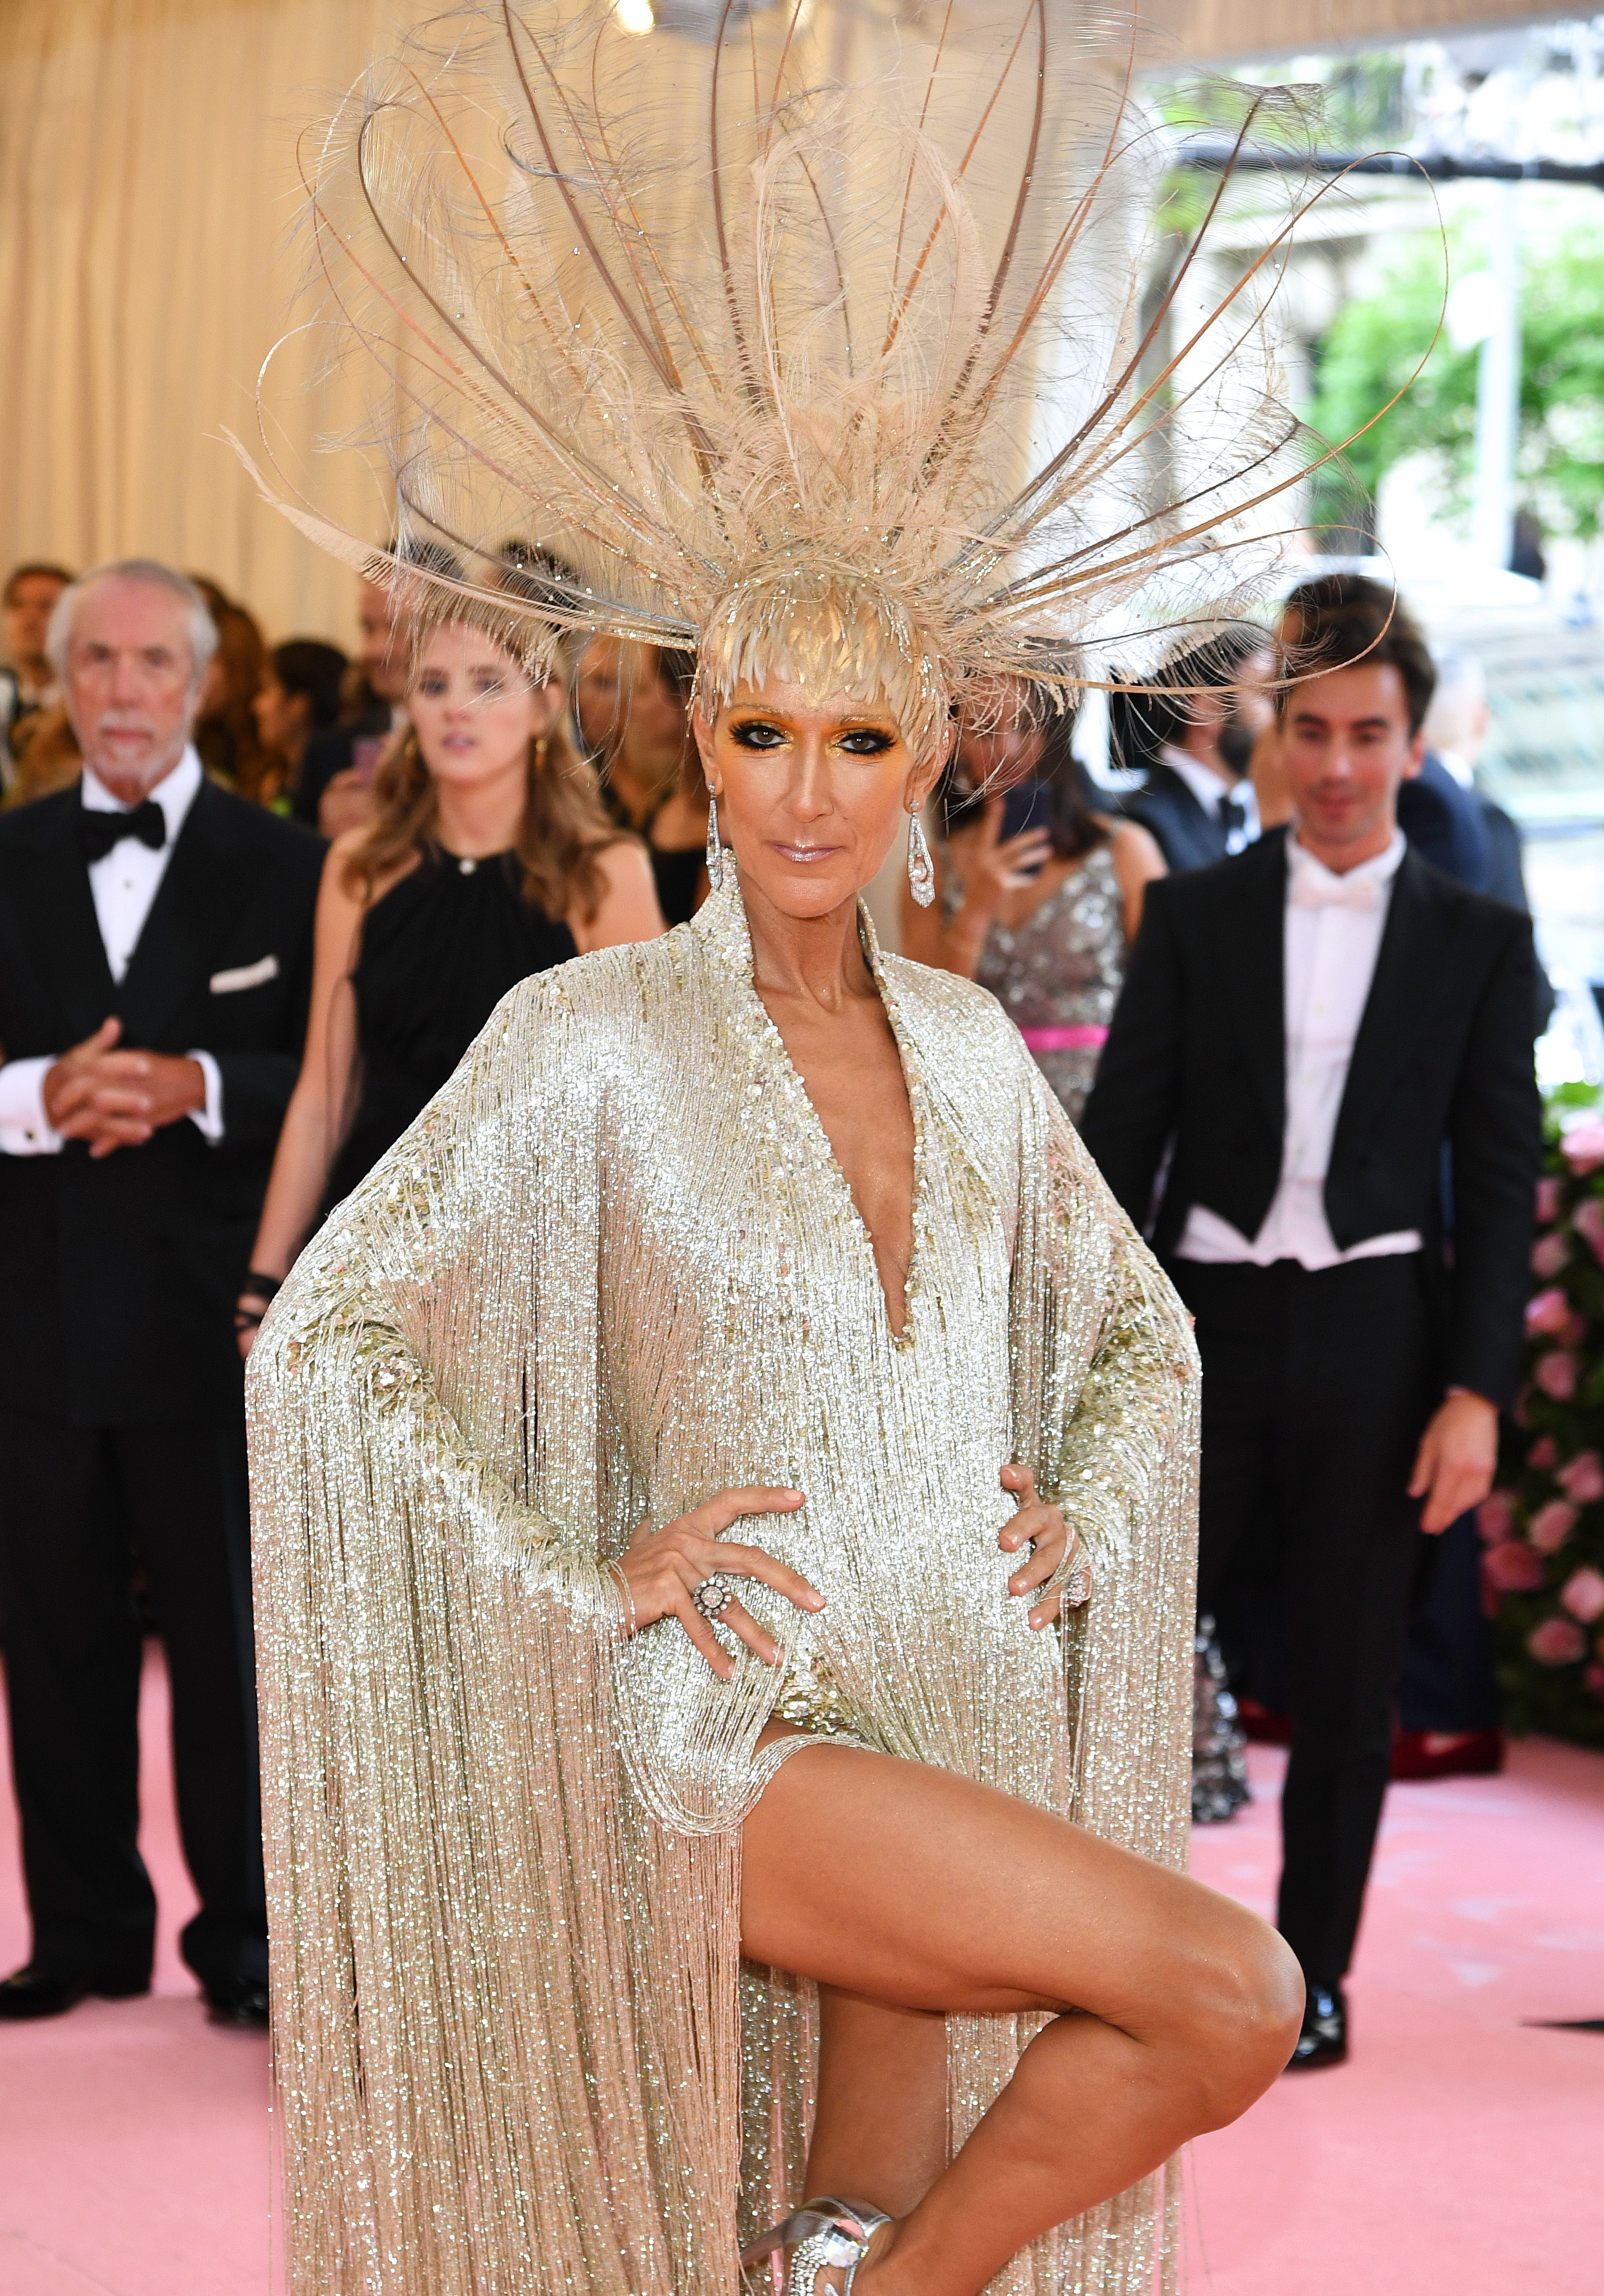 Céline Dion Oh Céline, who can do no wrong.